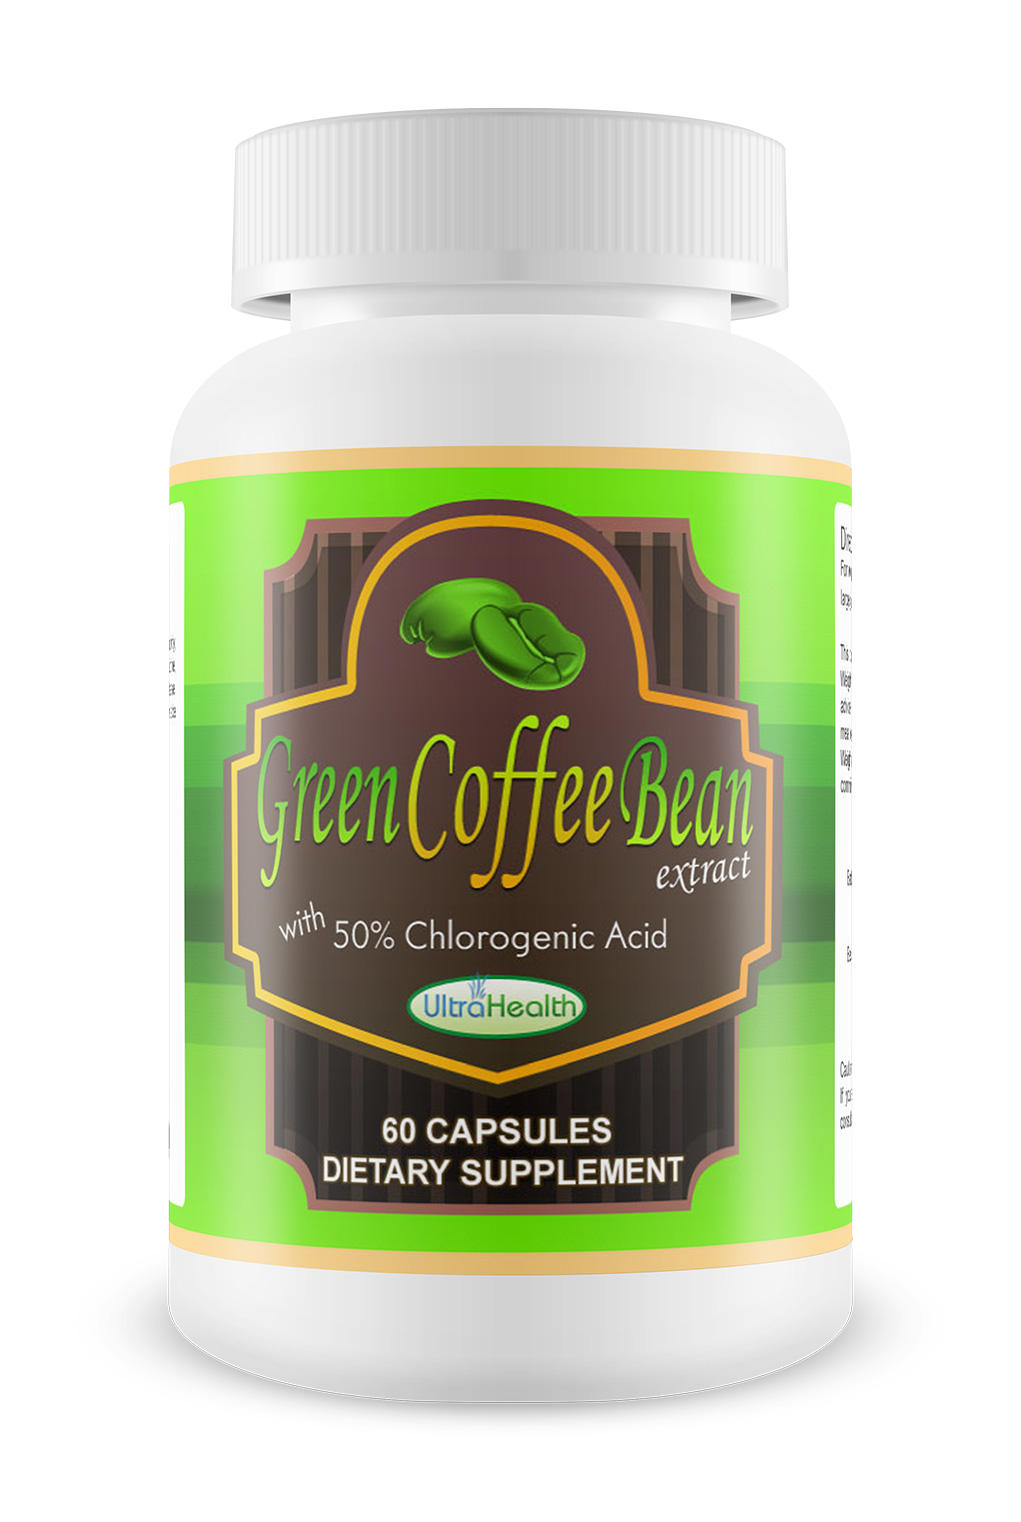 Green Coffee Bean Extract Improves Focus Mood And Energy Levels Herbal New Zealand